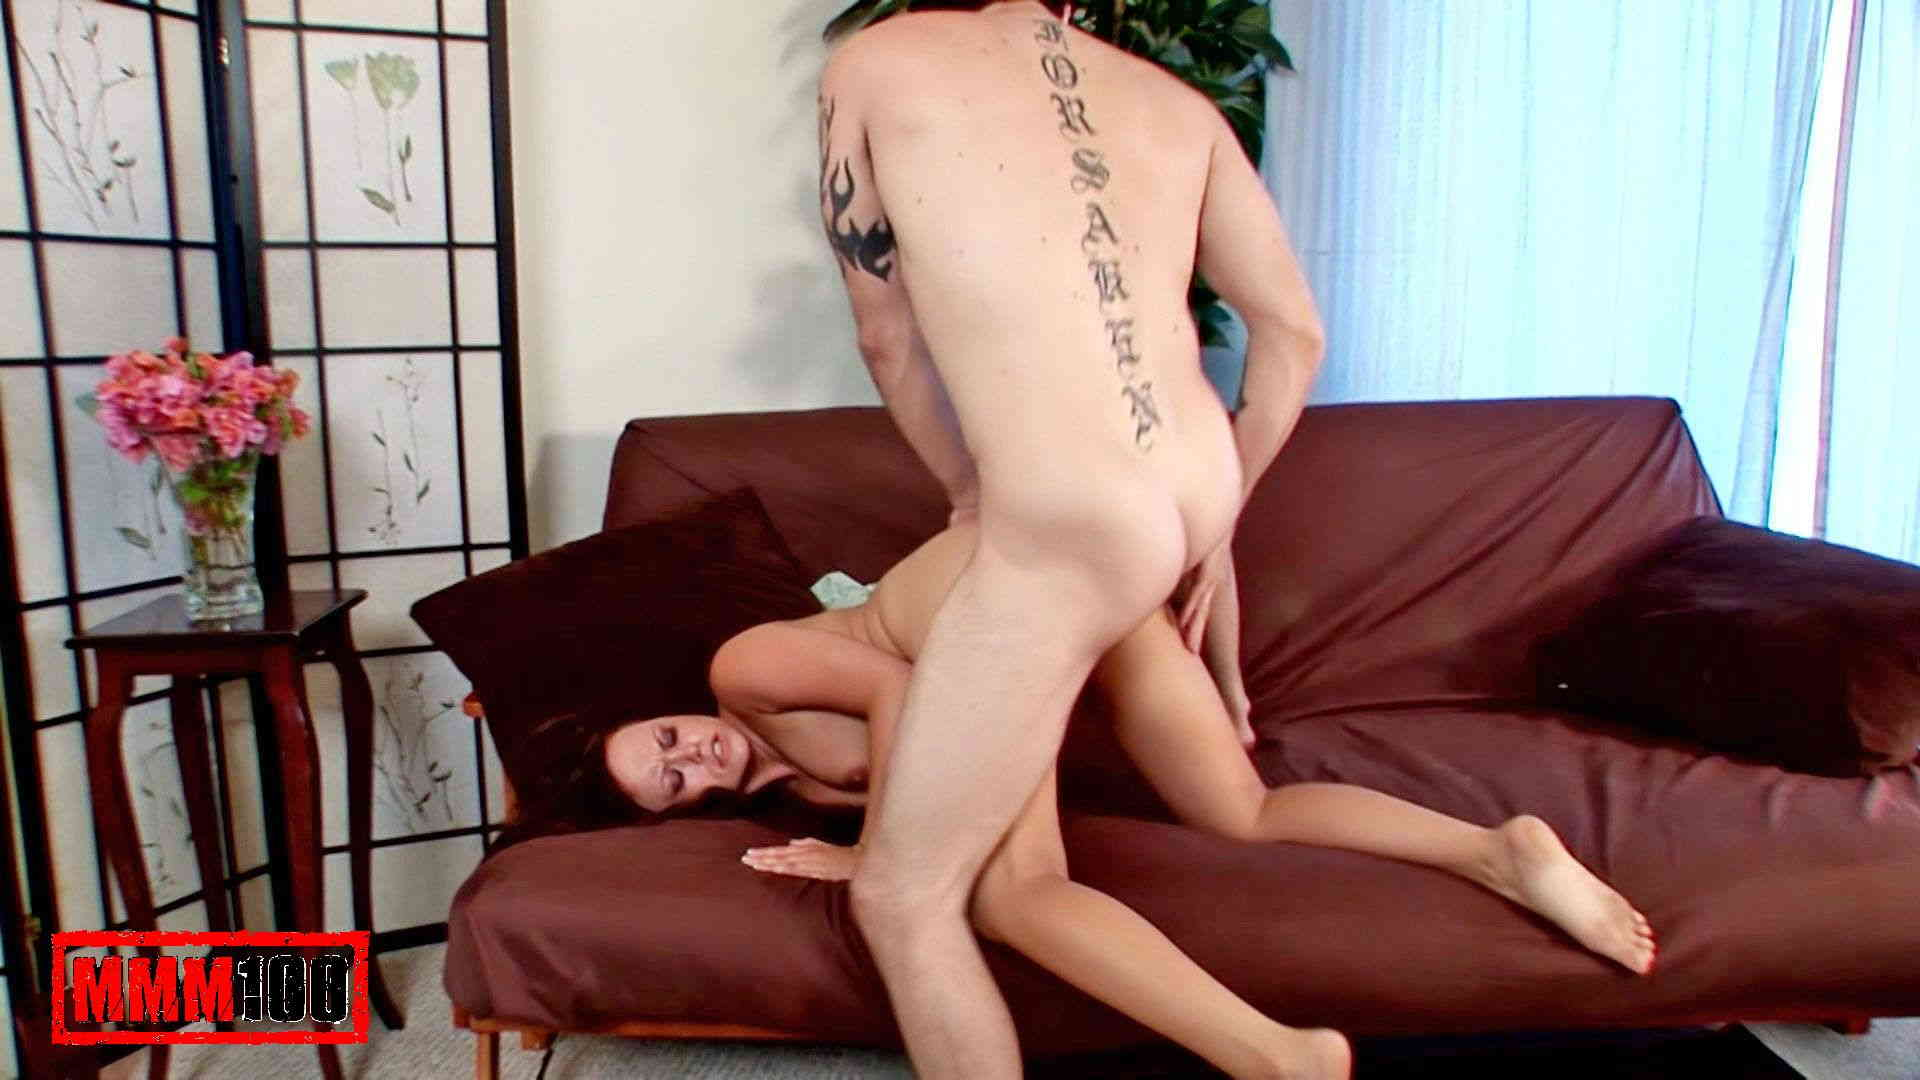 Mutherfucker who kaci starr videos Hot!